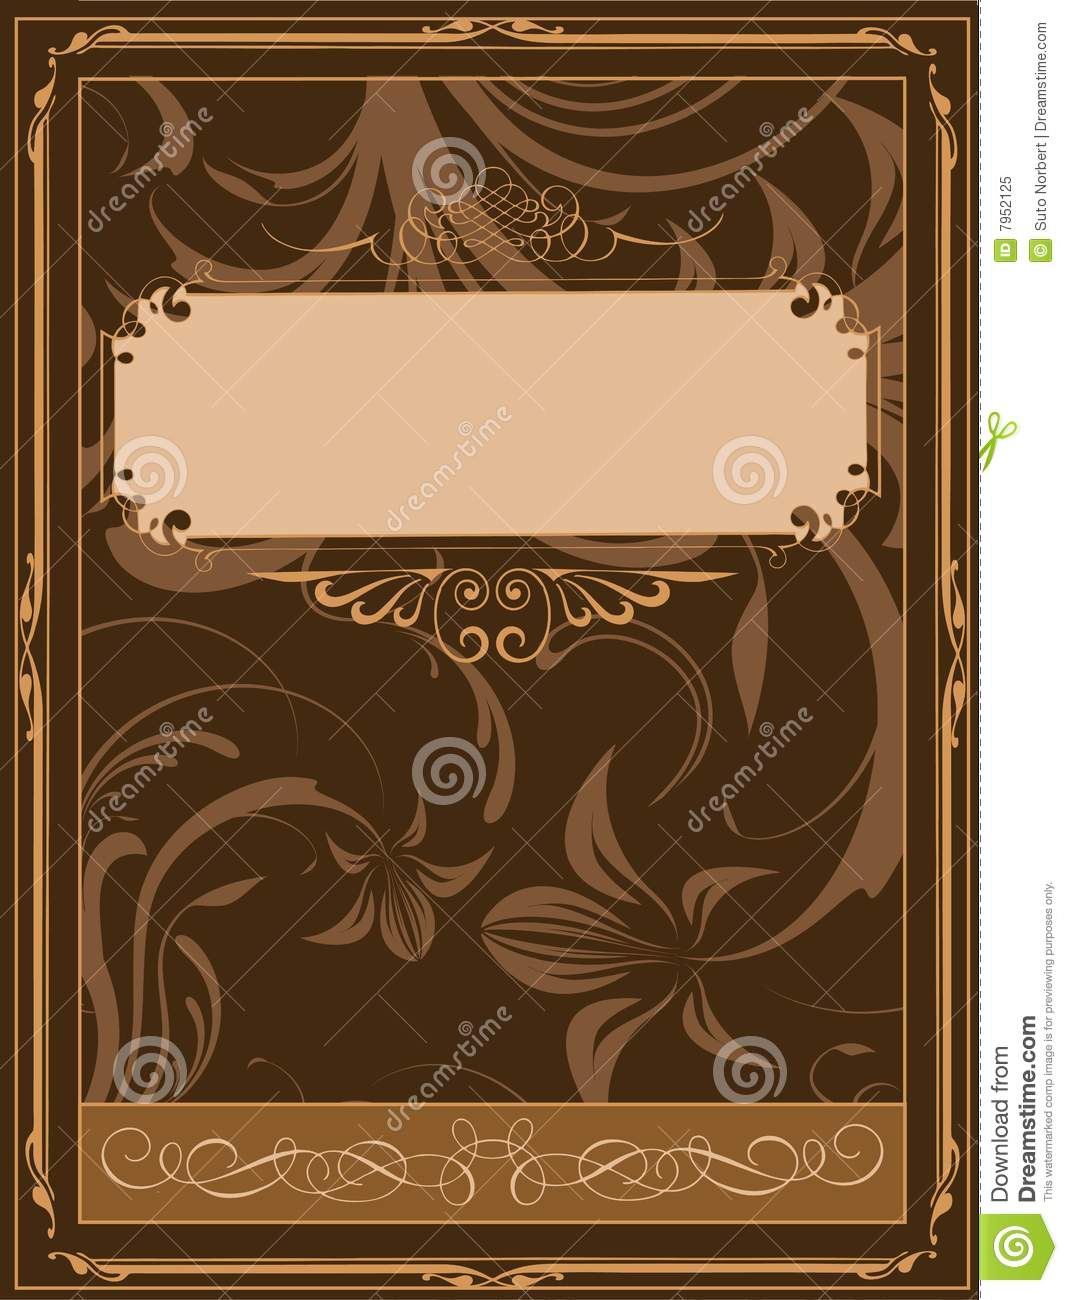 Book Cover Illustration Fee ~ Old book cover stock vector illustration of document